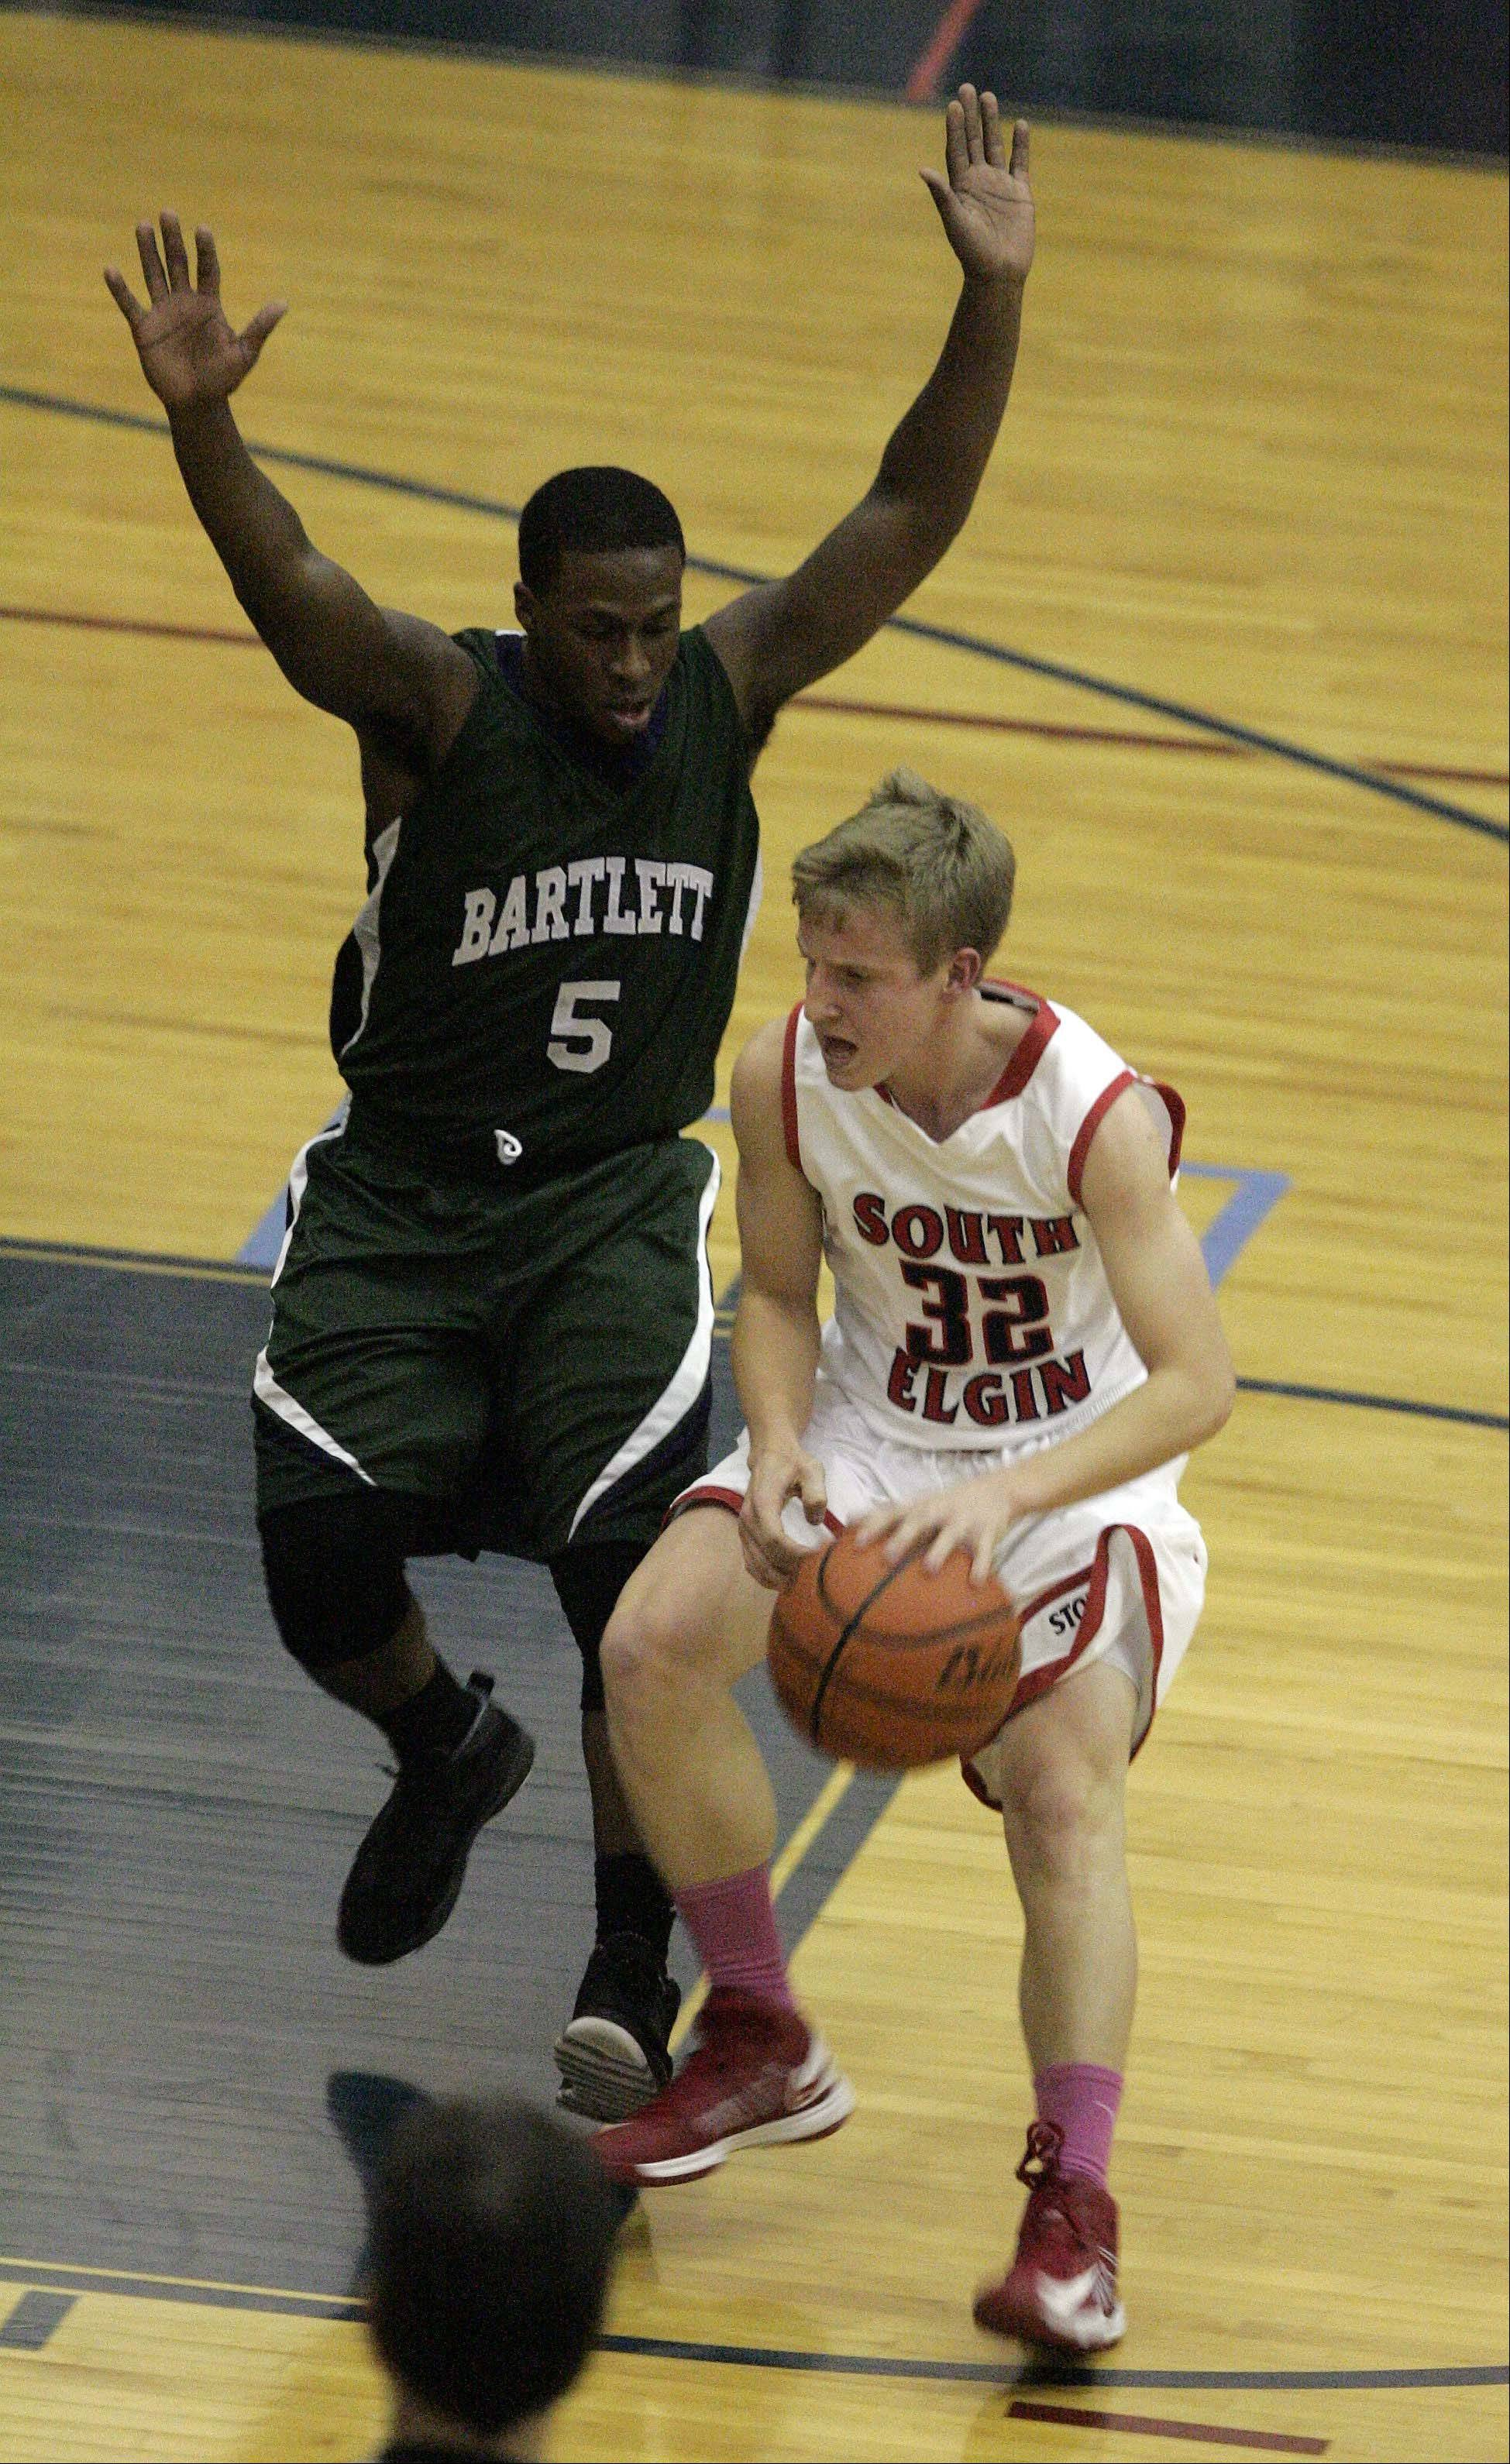 Images: Bartlett vs. South Elgin, boys basketball